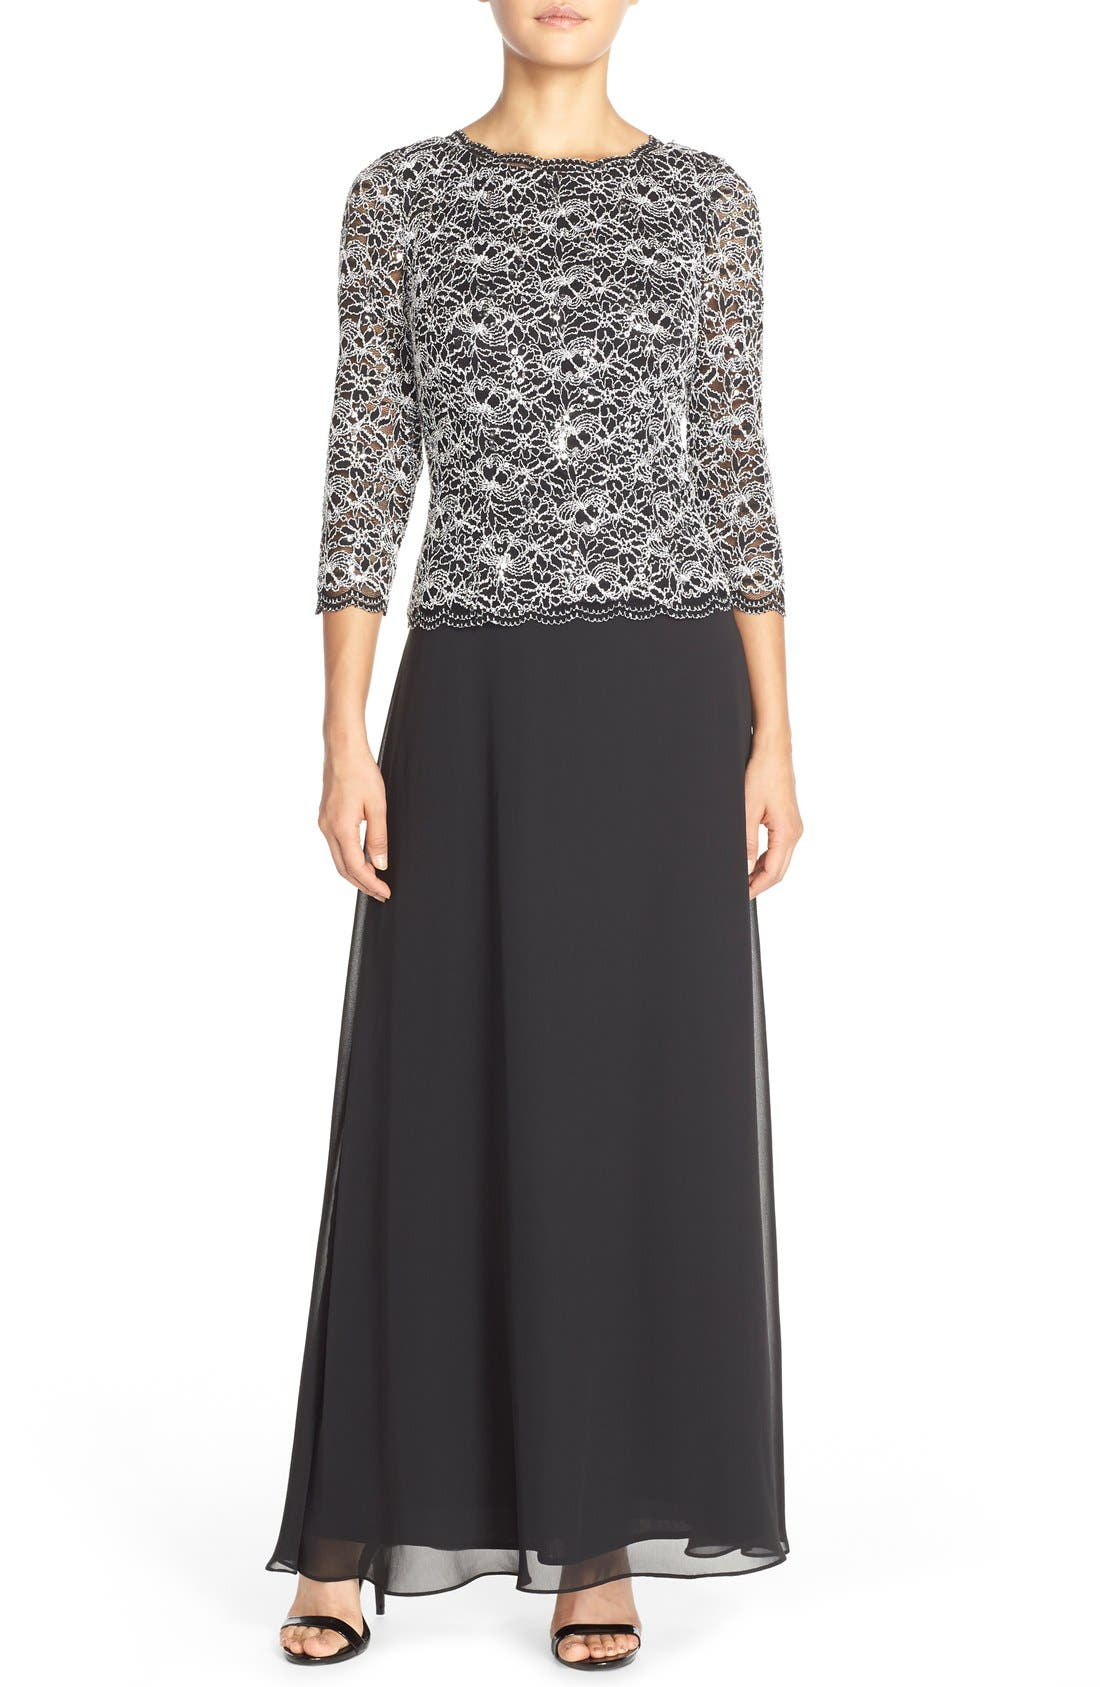 ALEX EVENINGS, Lace & Chiffon Mock Two-Piece Gown, Main thumbnail 1, color, BLACK/ WHITE